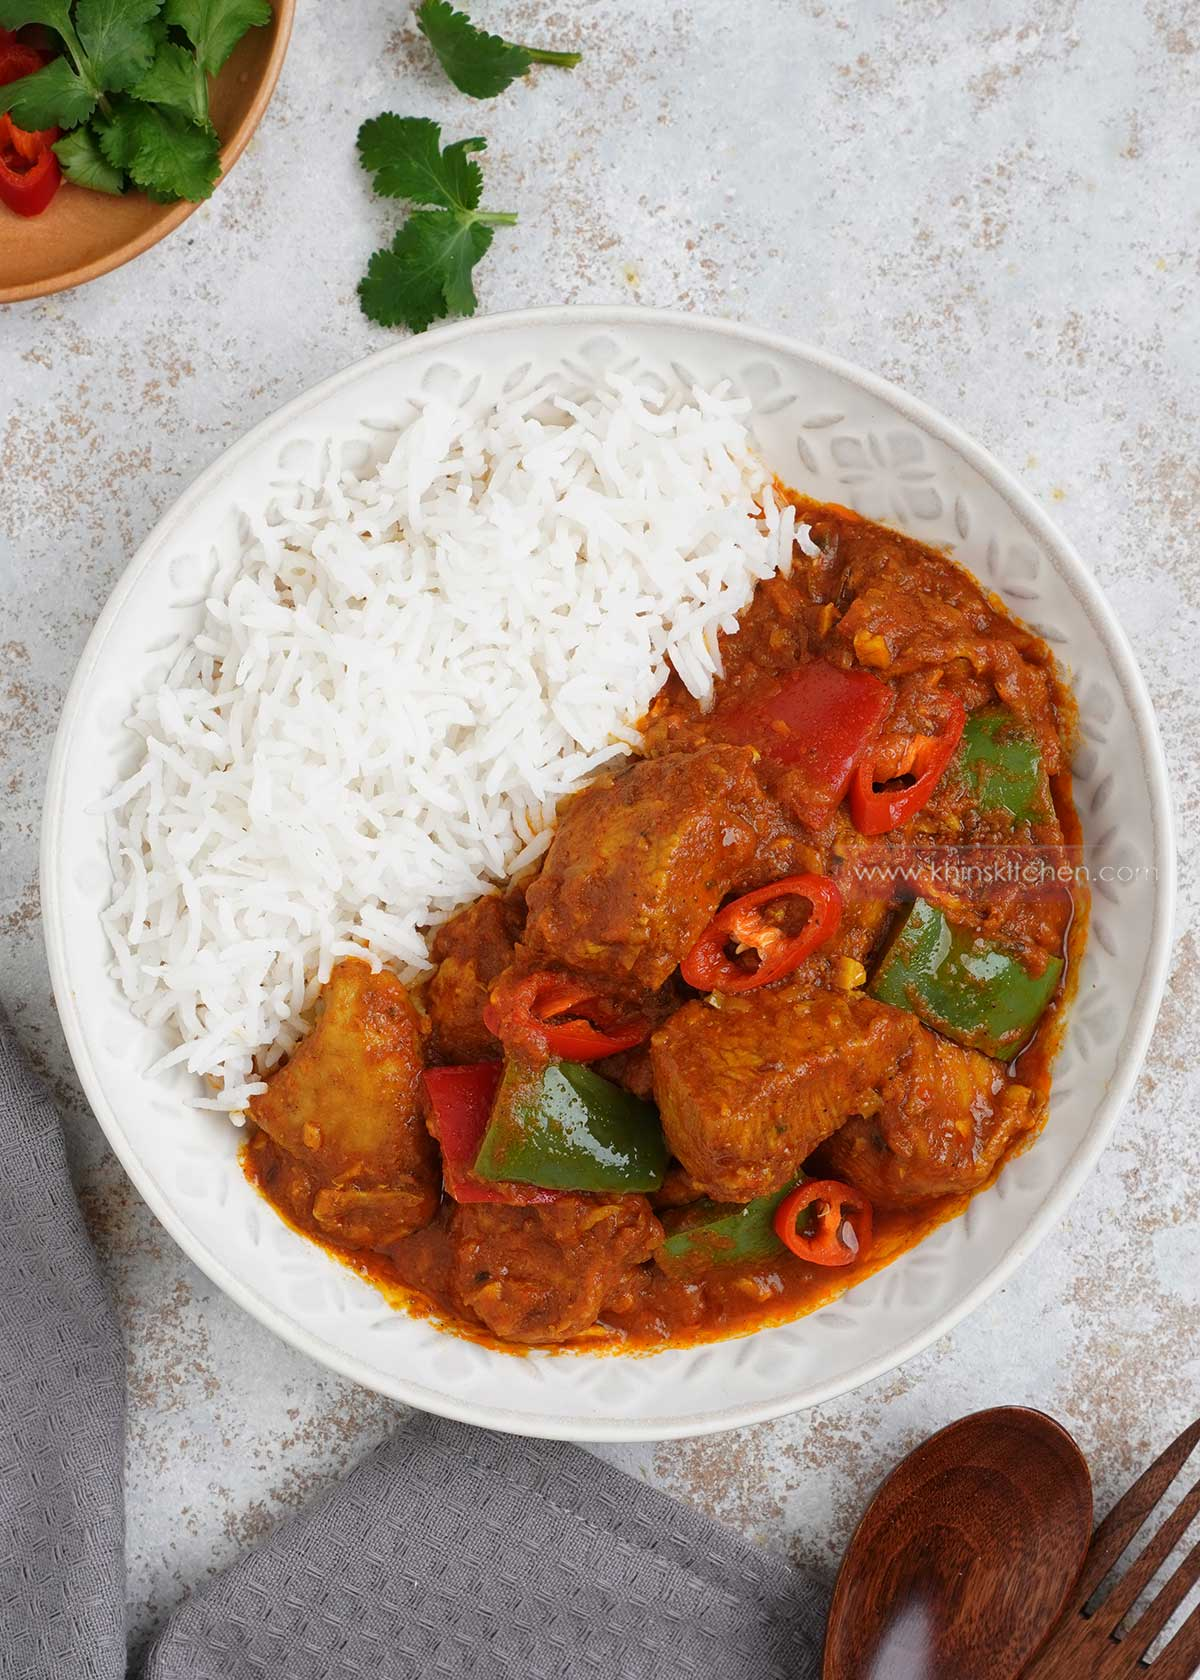 A white plate containing plain rice and chicken jalfrezi curry displayed on the white table.